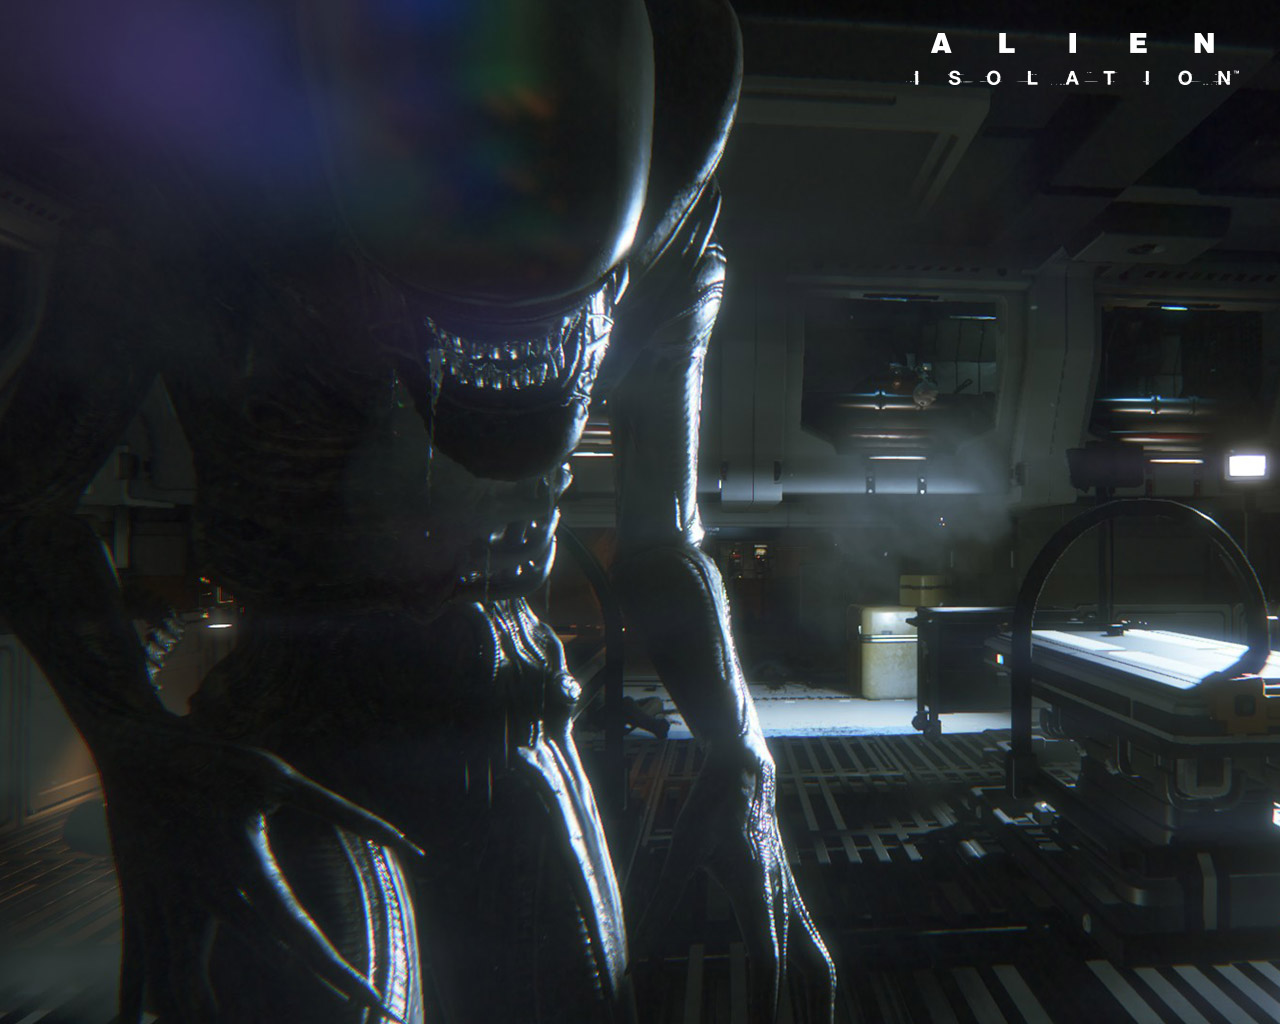 Free Alien Isolation Wallpaper in 1280x1024